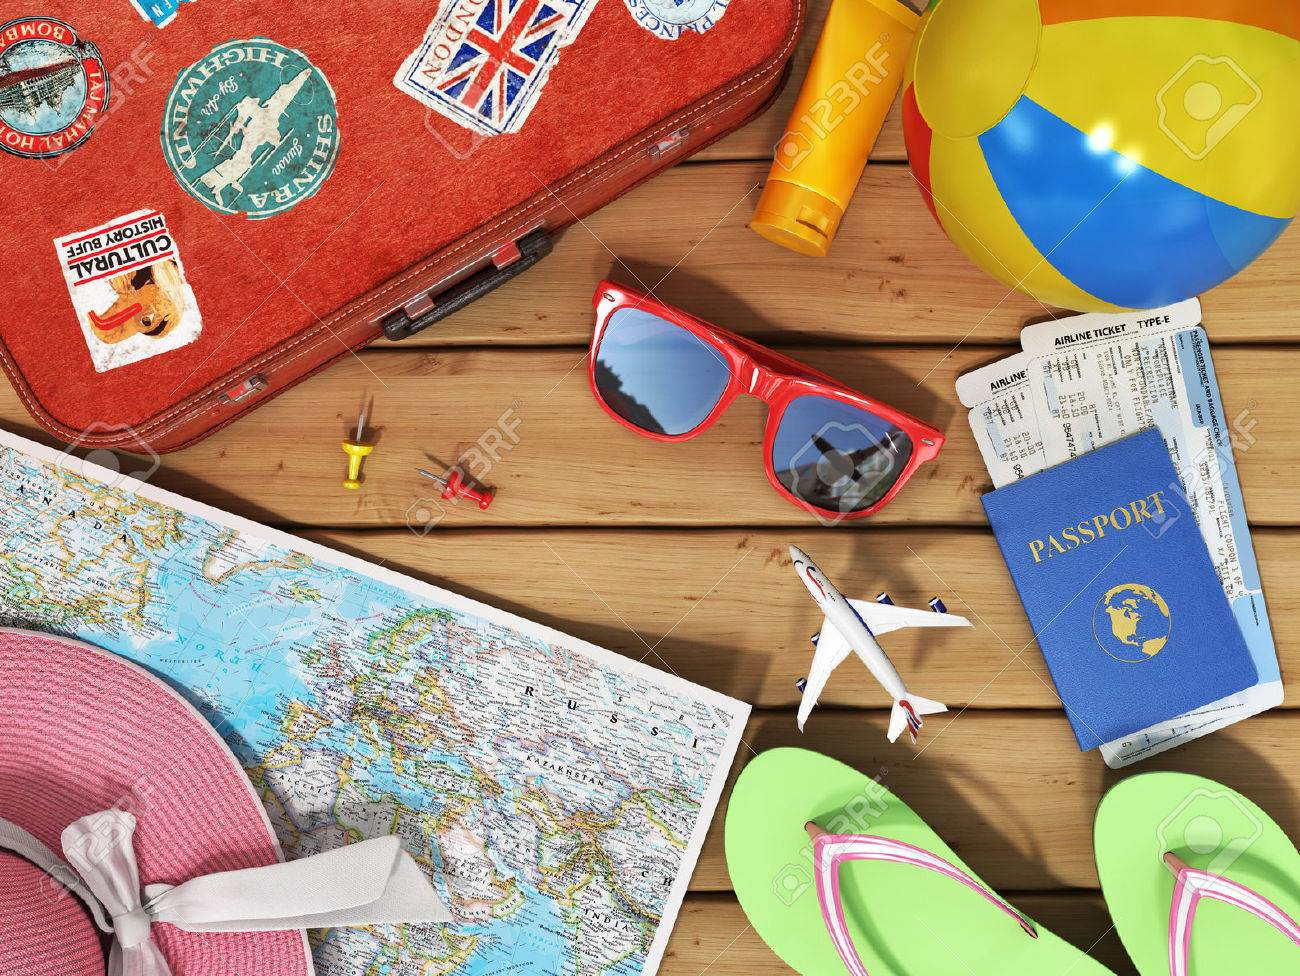 Travel concept snglasses world map beach shoes sunscreen snglasses world map beach shoes sunscreen passport planeickets gumiabroncs Choice Image